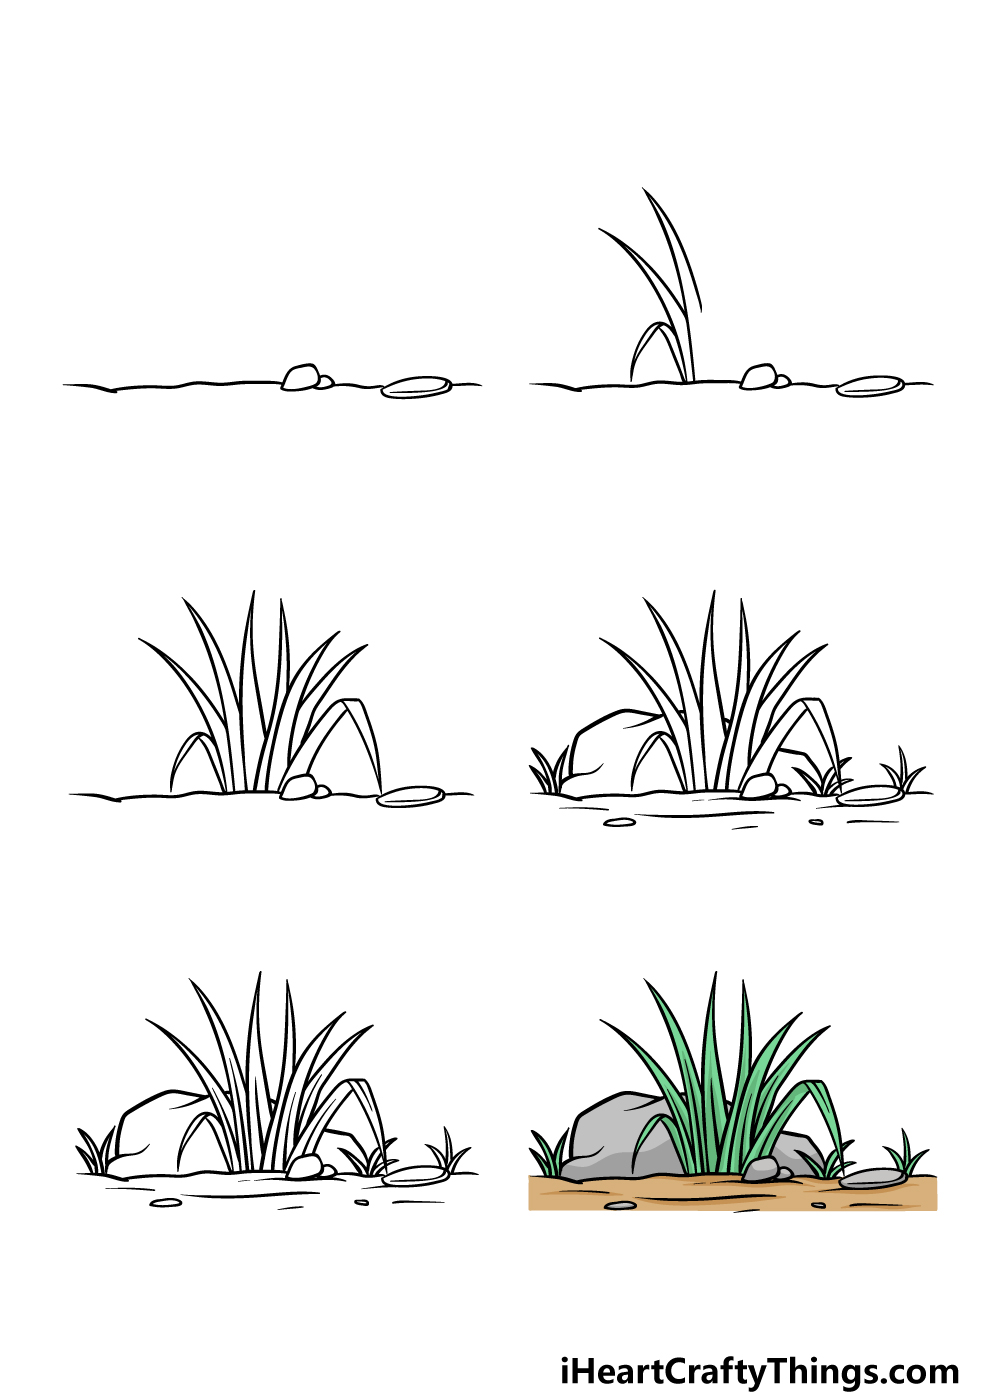 how to draw grass in 6 steps